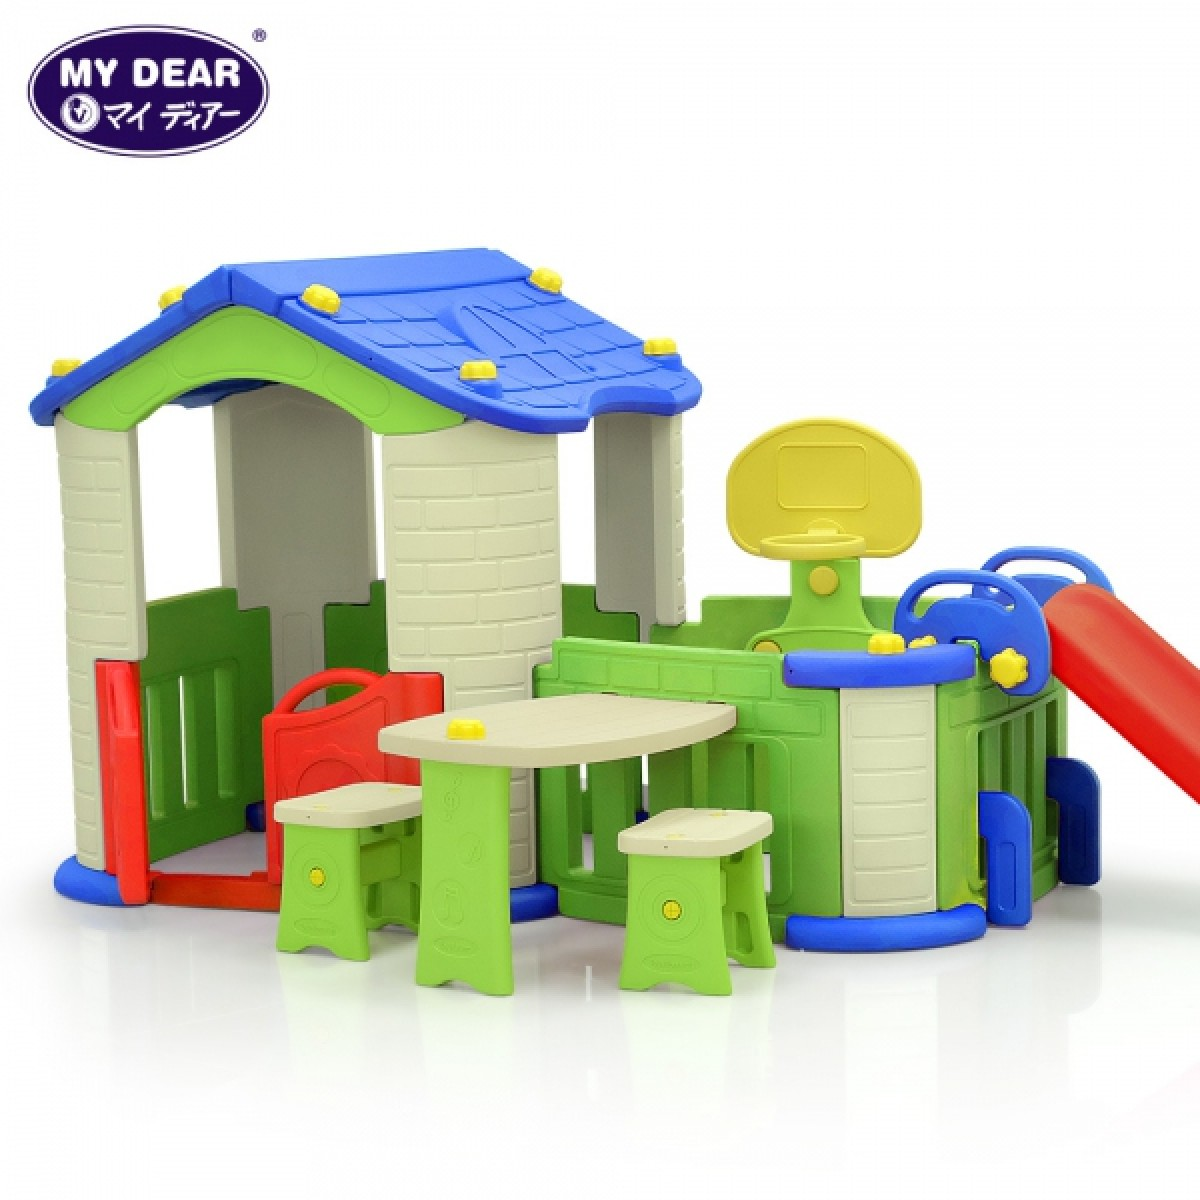 (Chd-356) Pink Big House With 3 Play Activities - Kico Baby Center